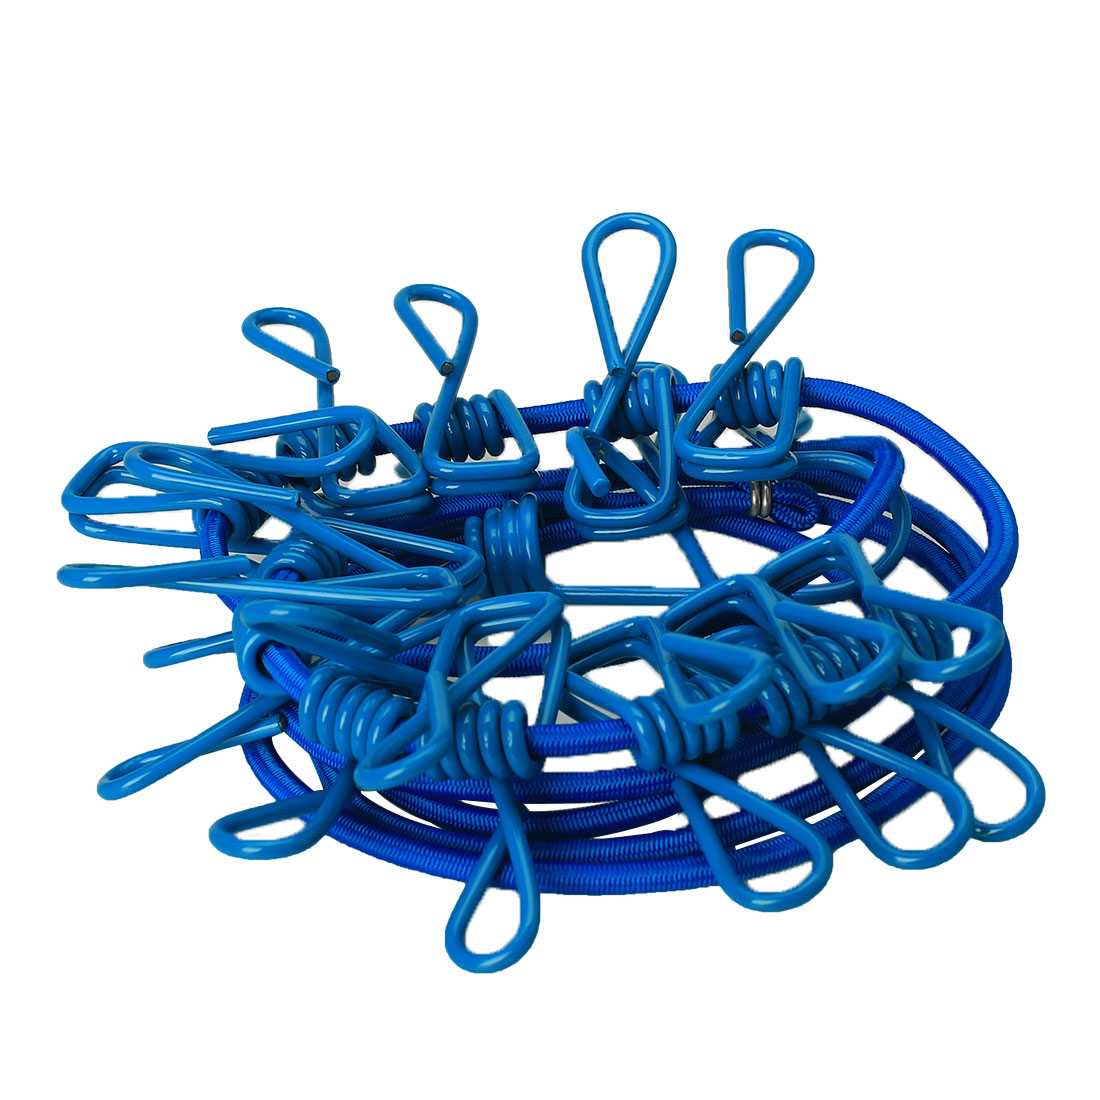 Home Stretchy Wind-proof Laundry Clothes Clothesline Rope Line String w 12 Clips